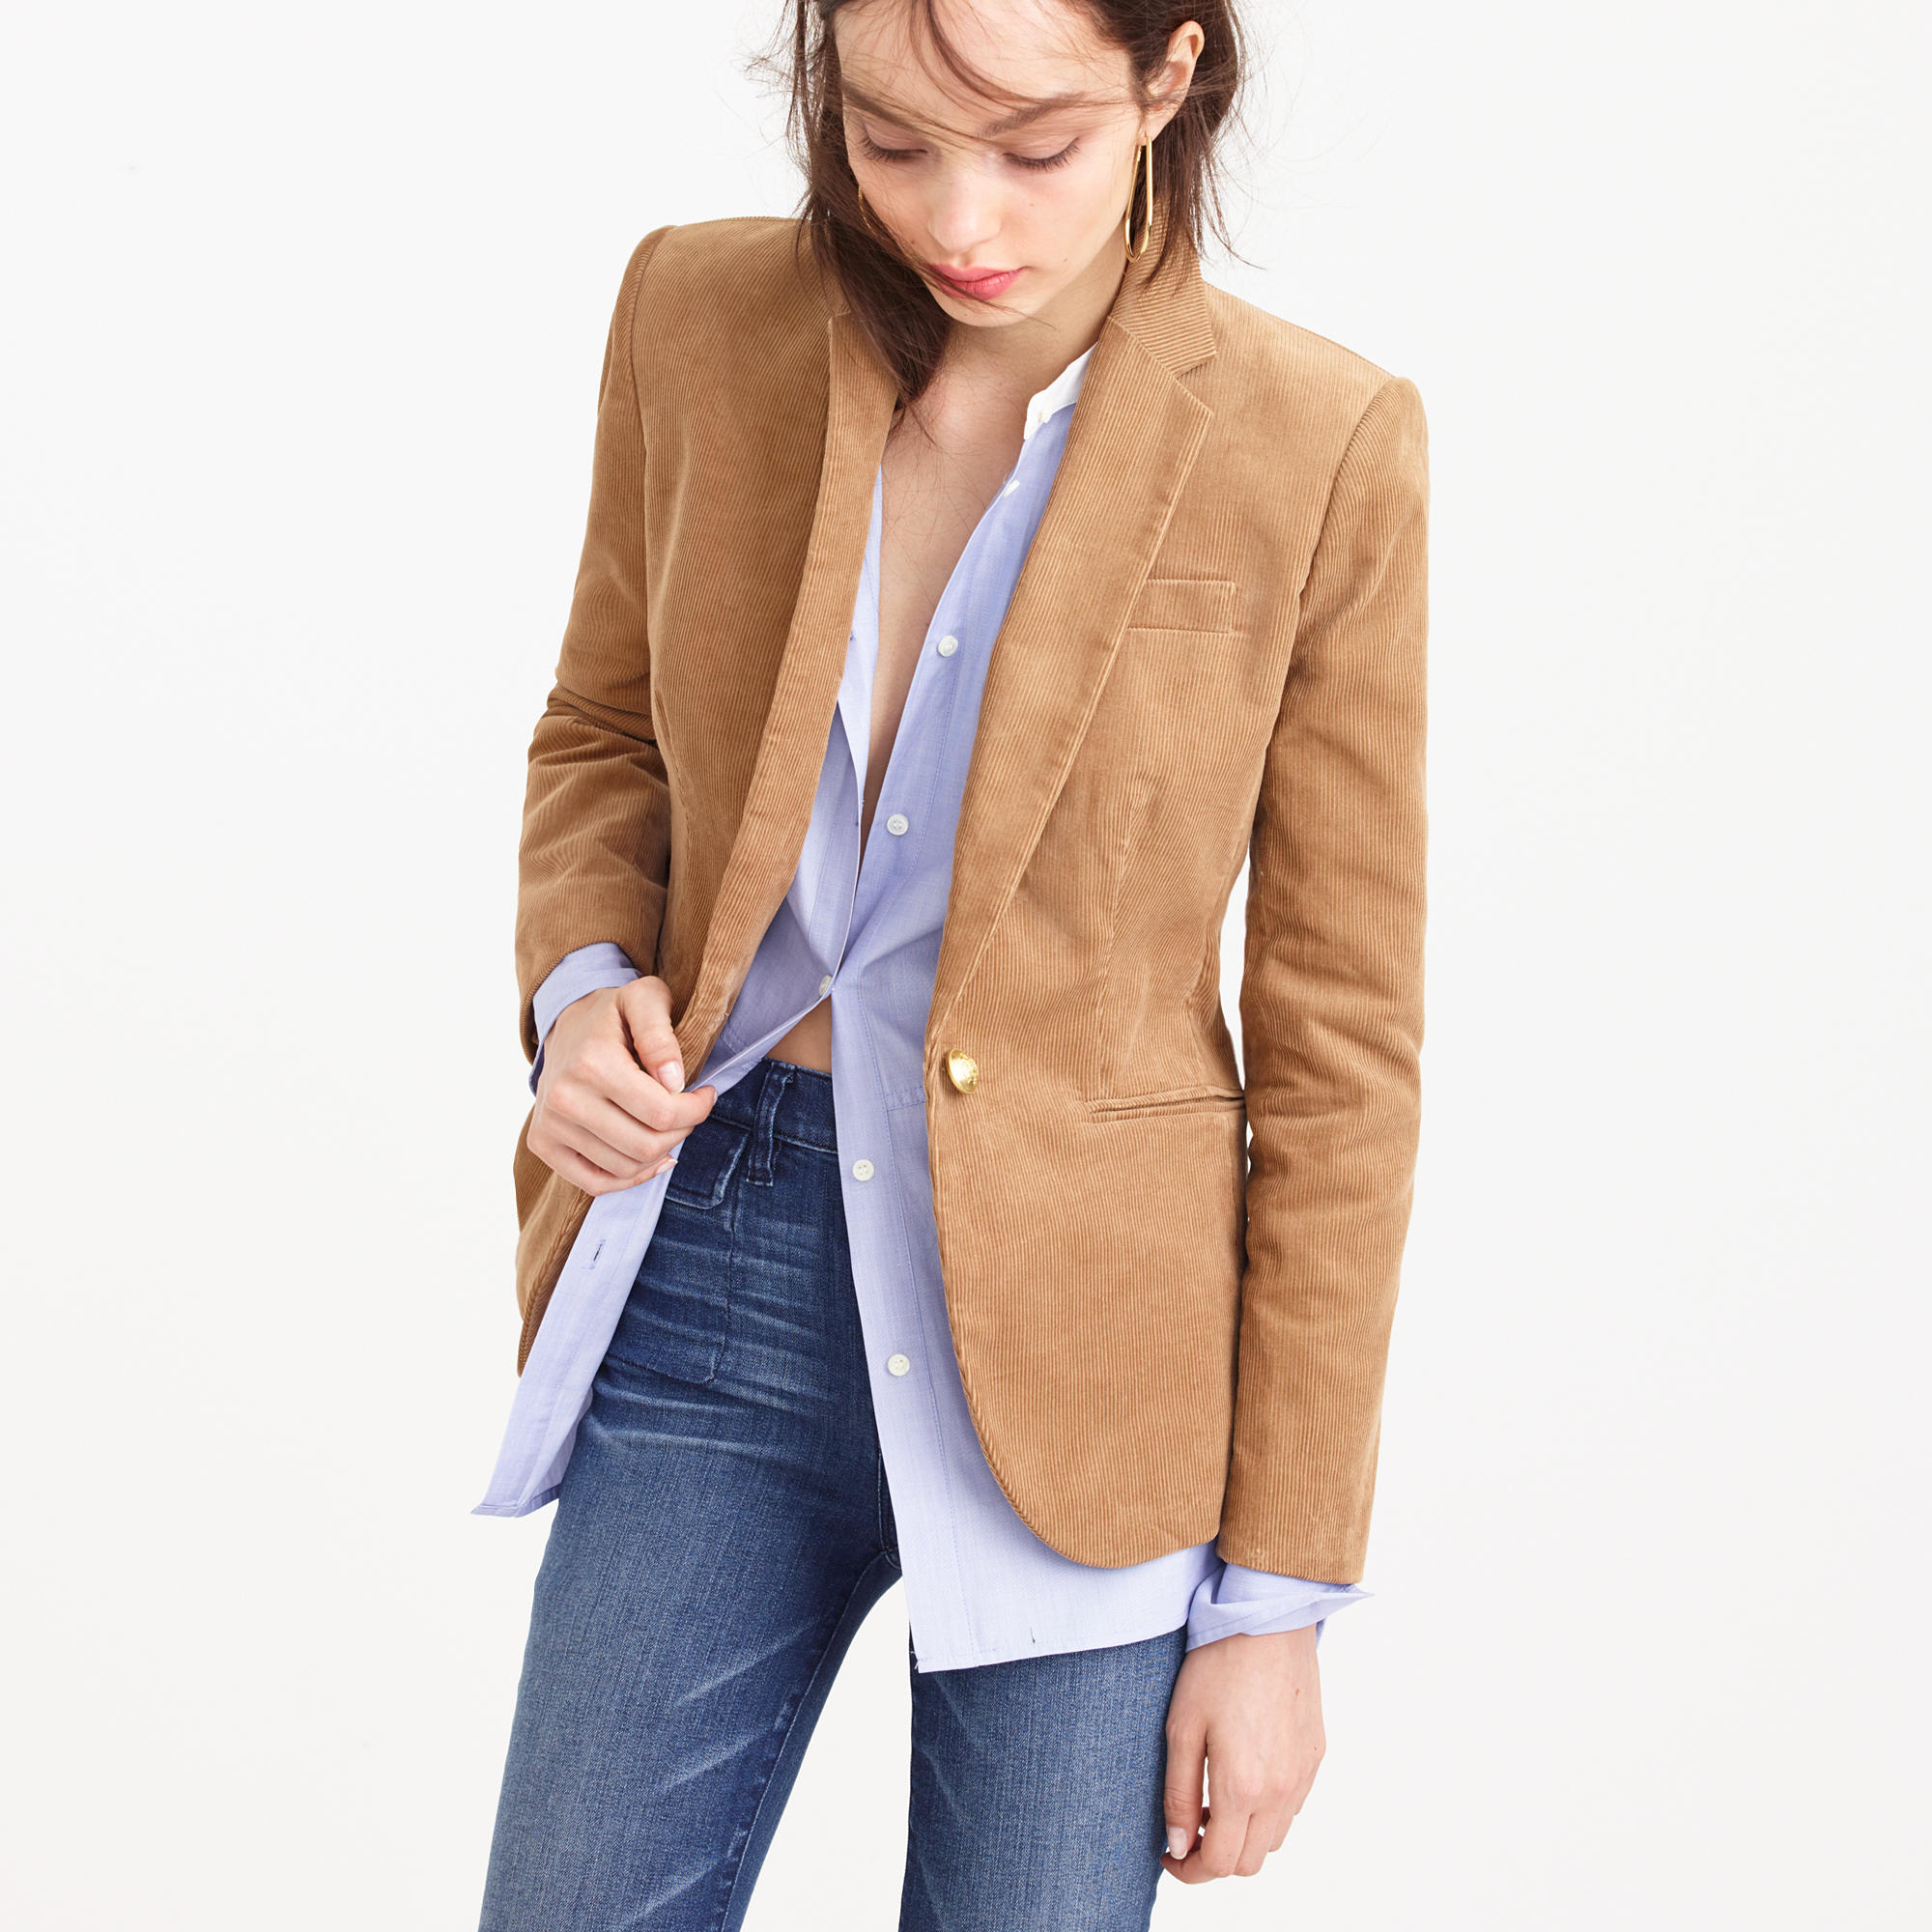 Find great deals on eBay for womens corduroy blazers. Shop with confidence.